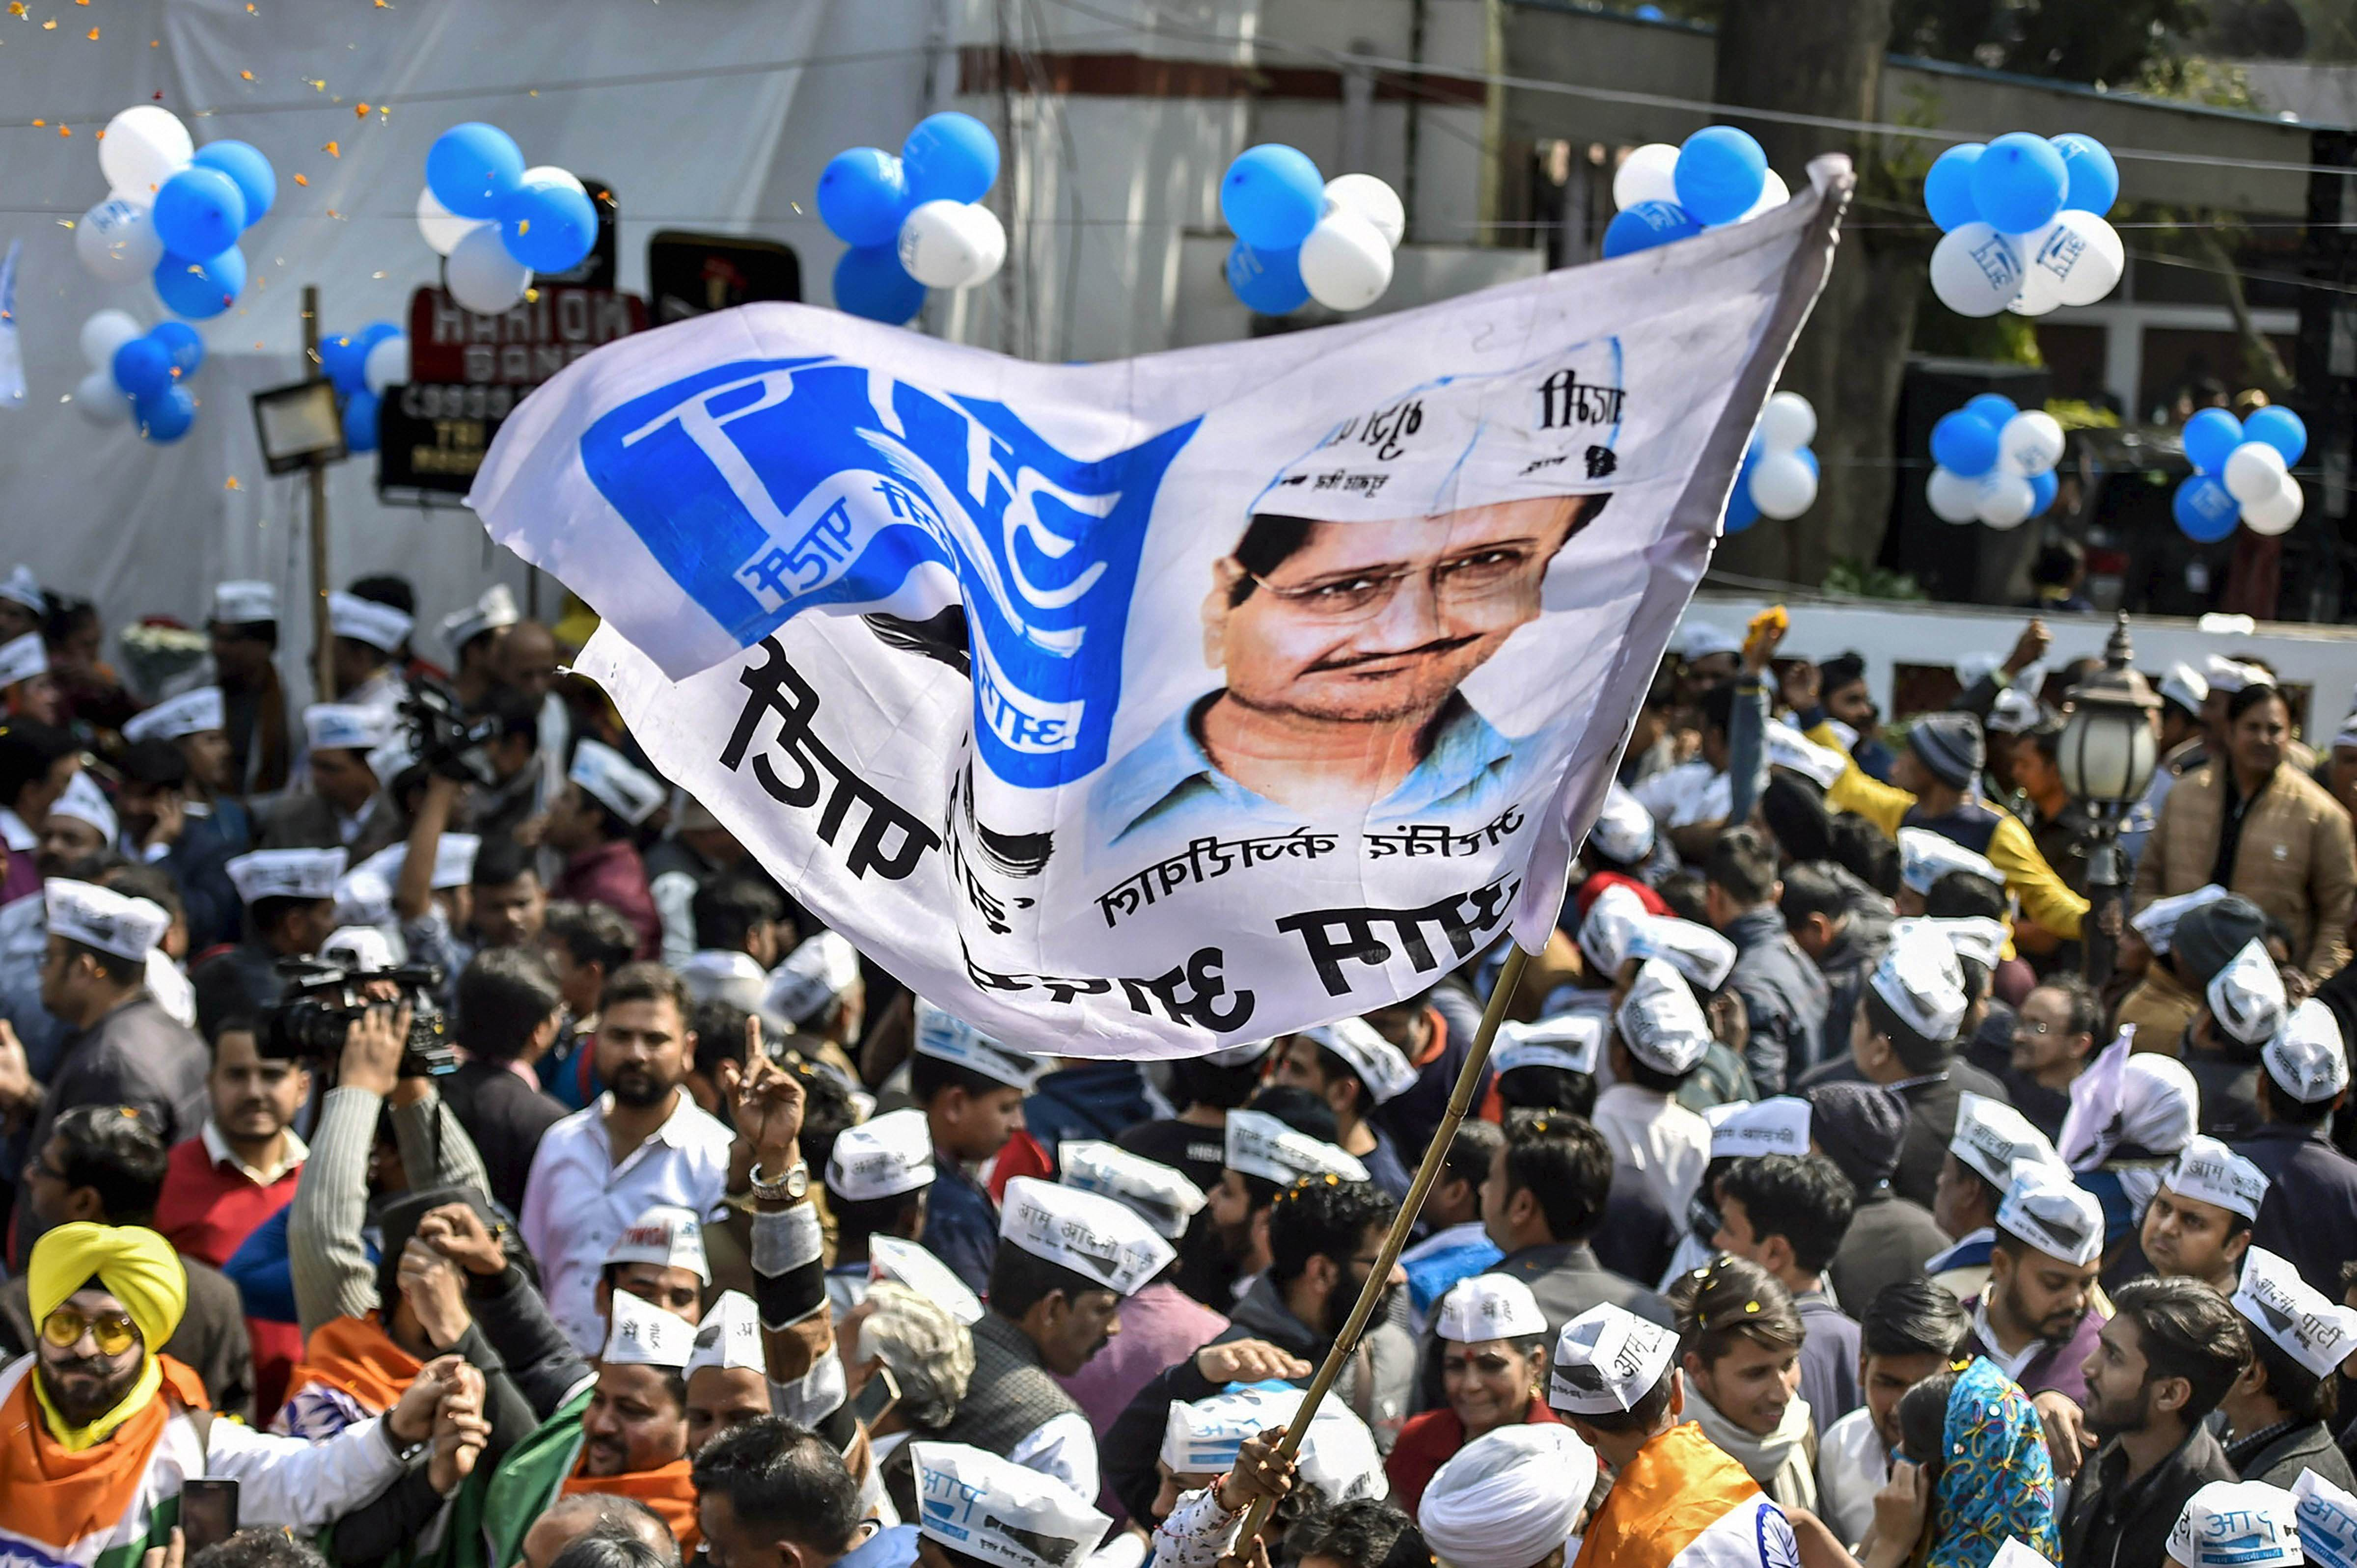 Aam Aadmi Party workers celebrate ahead of the final results, as early trends show party's victory in the Delhi Assembly polls, at party headquarters in New Delhi, Tuesday, Feb. 11, 2020.